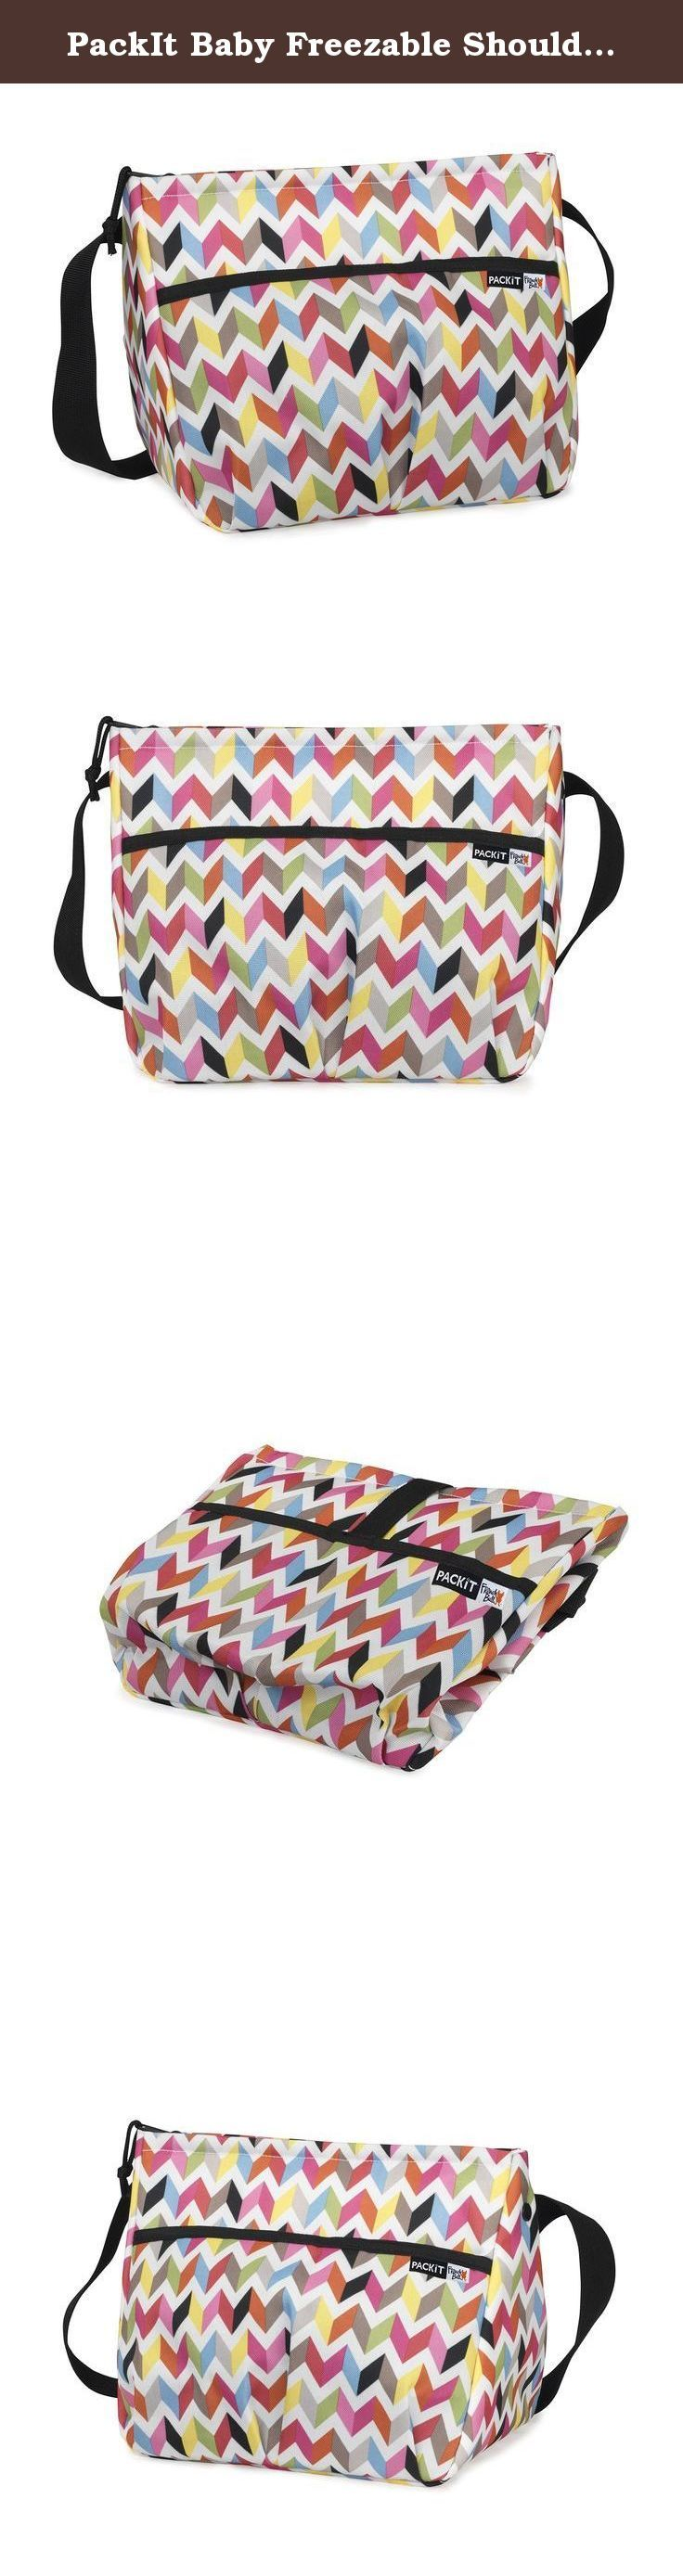 PackIt Baby Freezable Shoulder Bag for Baby Bottles, Ziggy Print. Parents and caregivers know what a challenge it is to pack refrigerated food and drinks for their little ones when they're on the go. PackIt is the first company to create coolers that actually cools their essentials on the go without separate ice or ice packs needed. This stylish, all-in-one solution is perfect for transporting milk, formula or any other liquid that needs to stay cooled. This bottle cooler features…